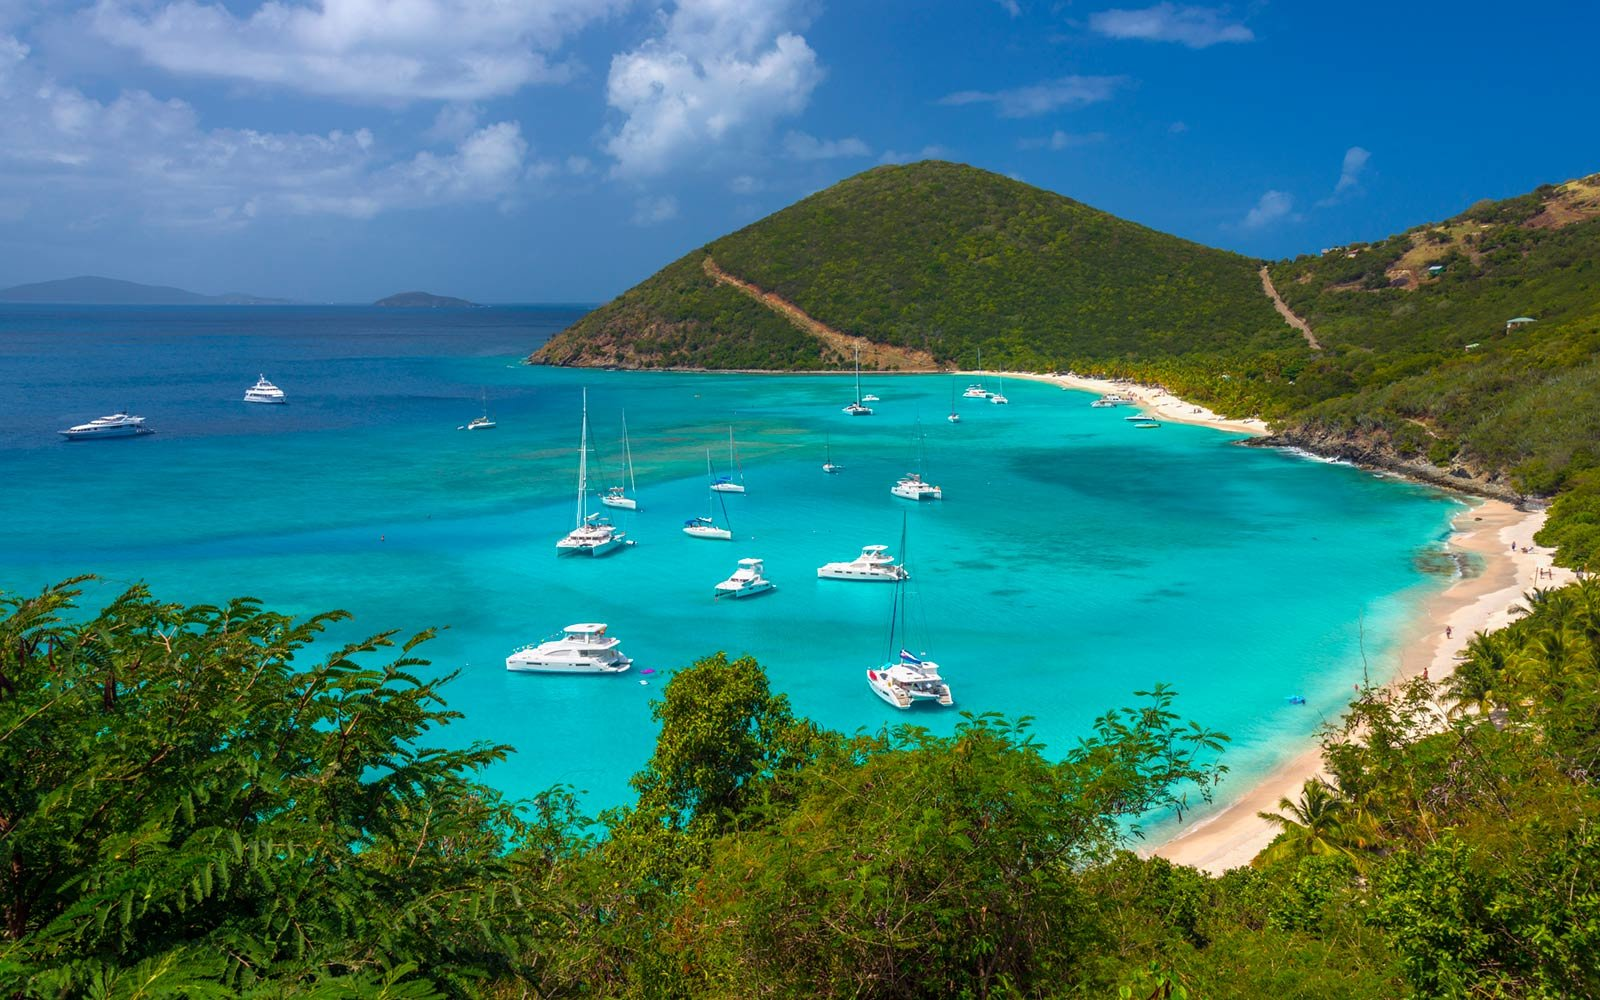 saint croix chat sites Expedia add-on advantage: book a package & unlock up to 43% off select hotels terms applytravel the world better build your own st croix island vacation bundle flight + hotel & save 100% off your flight.